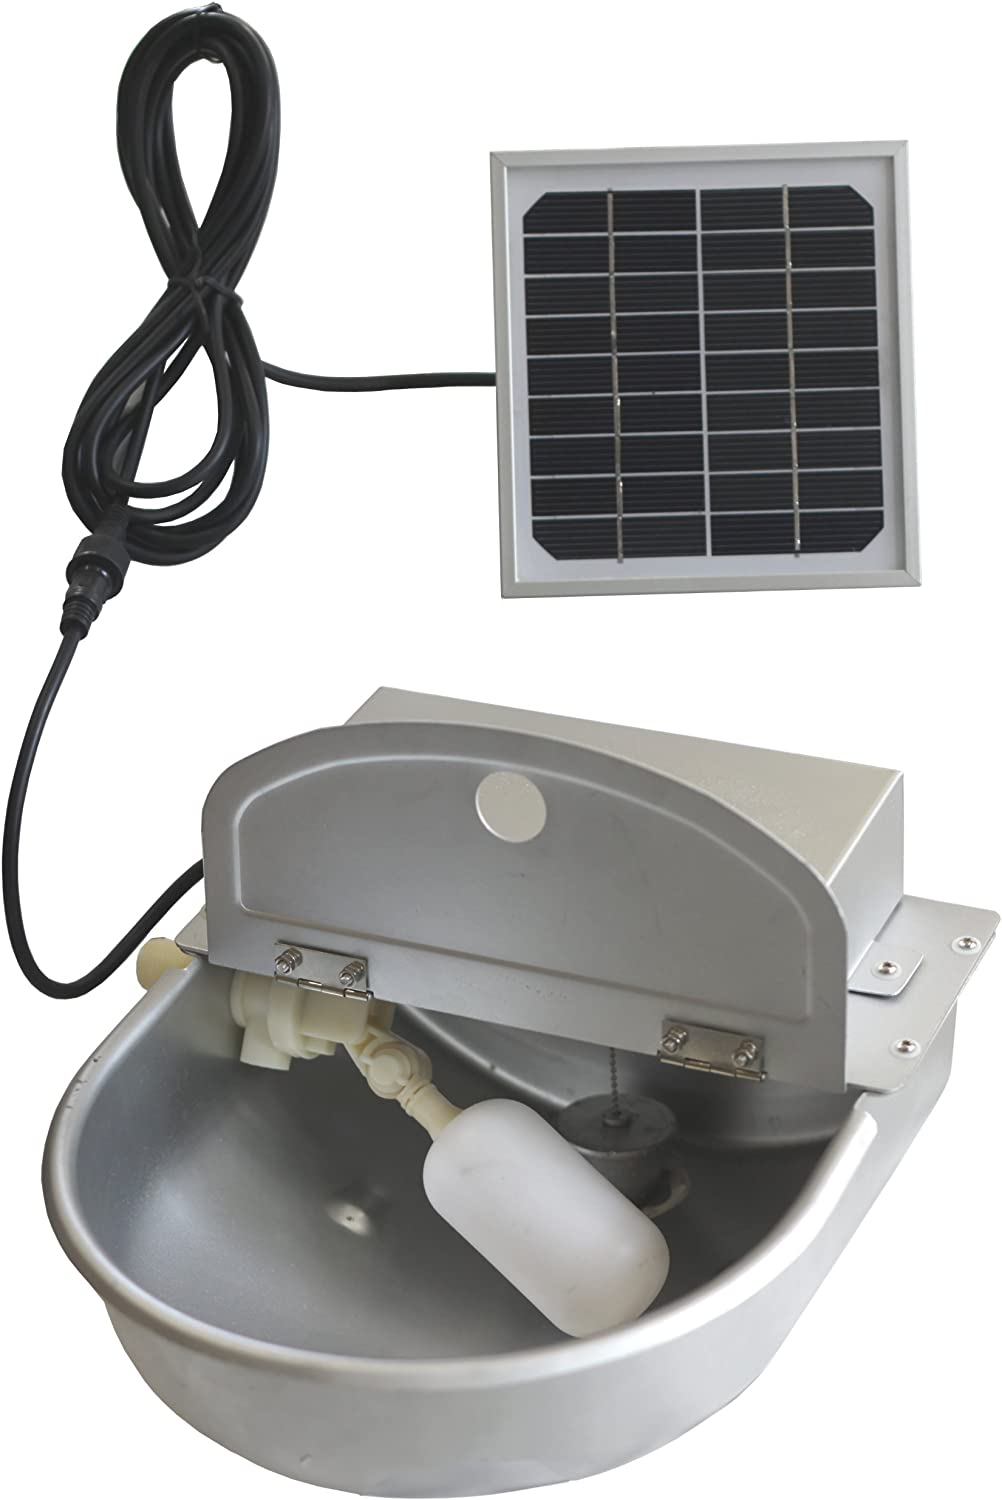 Ancnoble AutoRefill Steel Solar Powered Water Dispenser for Pets, 12 by 11 by 7Inch